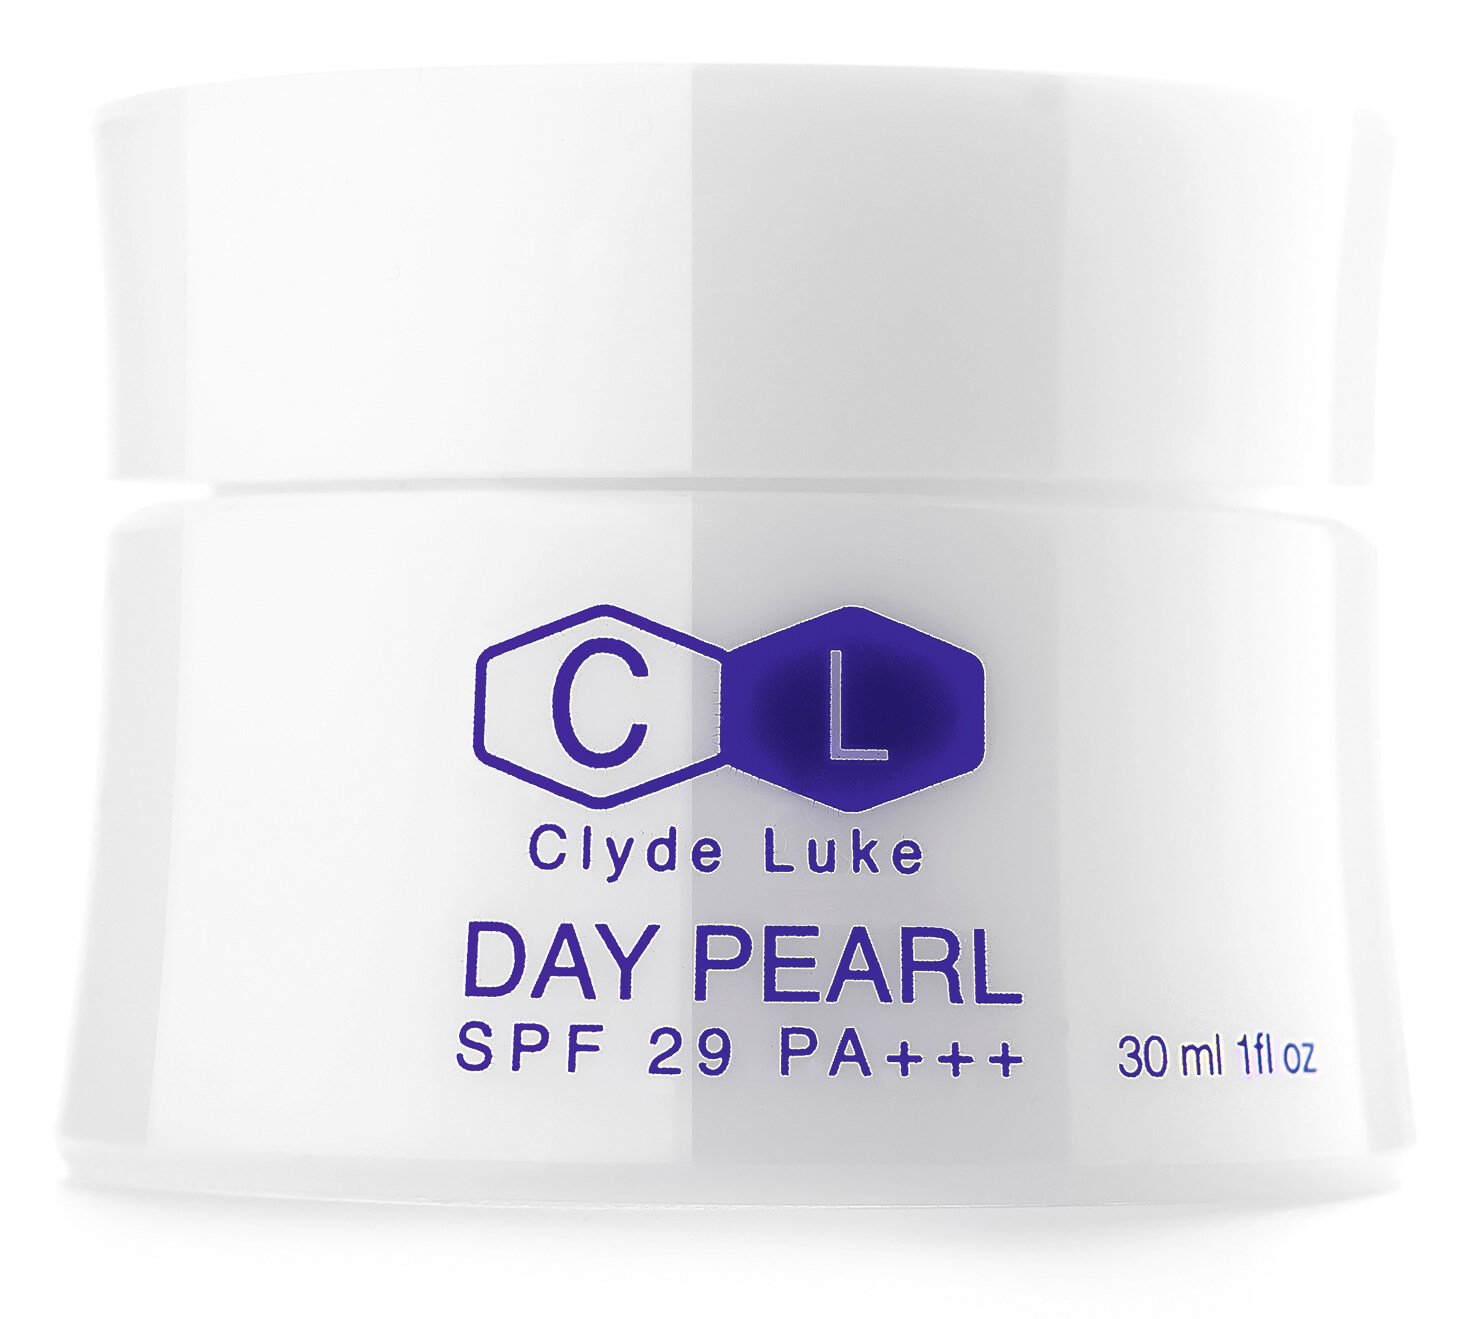 CL by Clyde Luke Day Pearl SPF 29PA+++($390/PavoSkin)